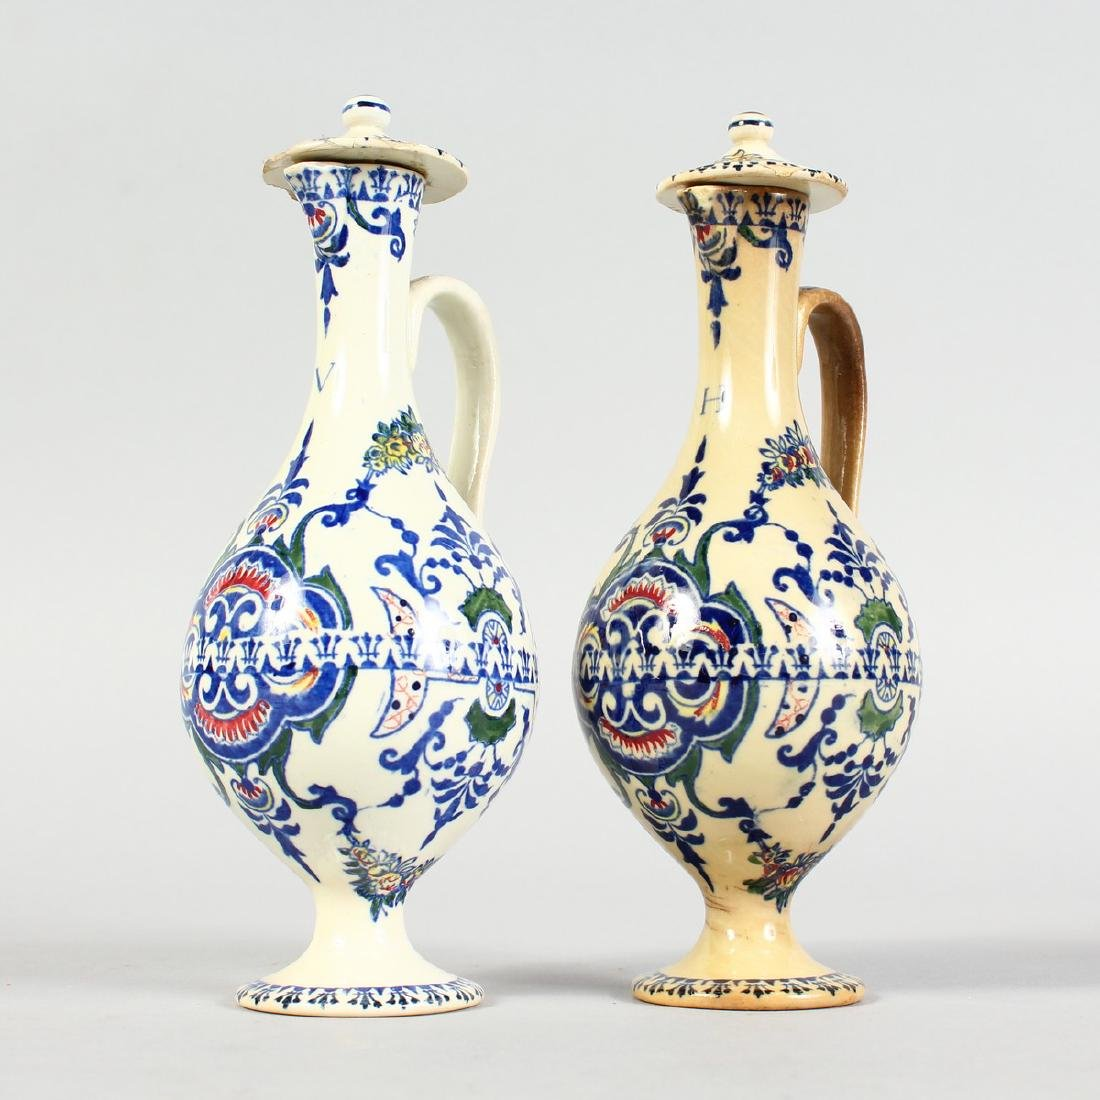 A SMALL PAIR OF FRENCH POTTERY OIL BOTTLES AND COVERS.